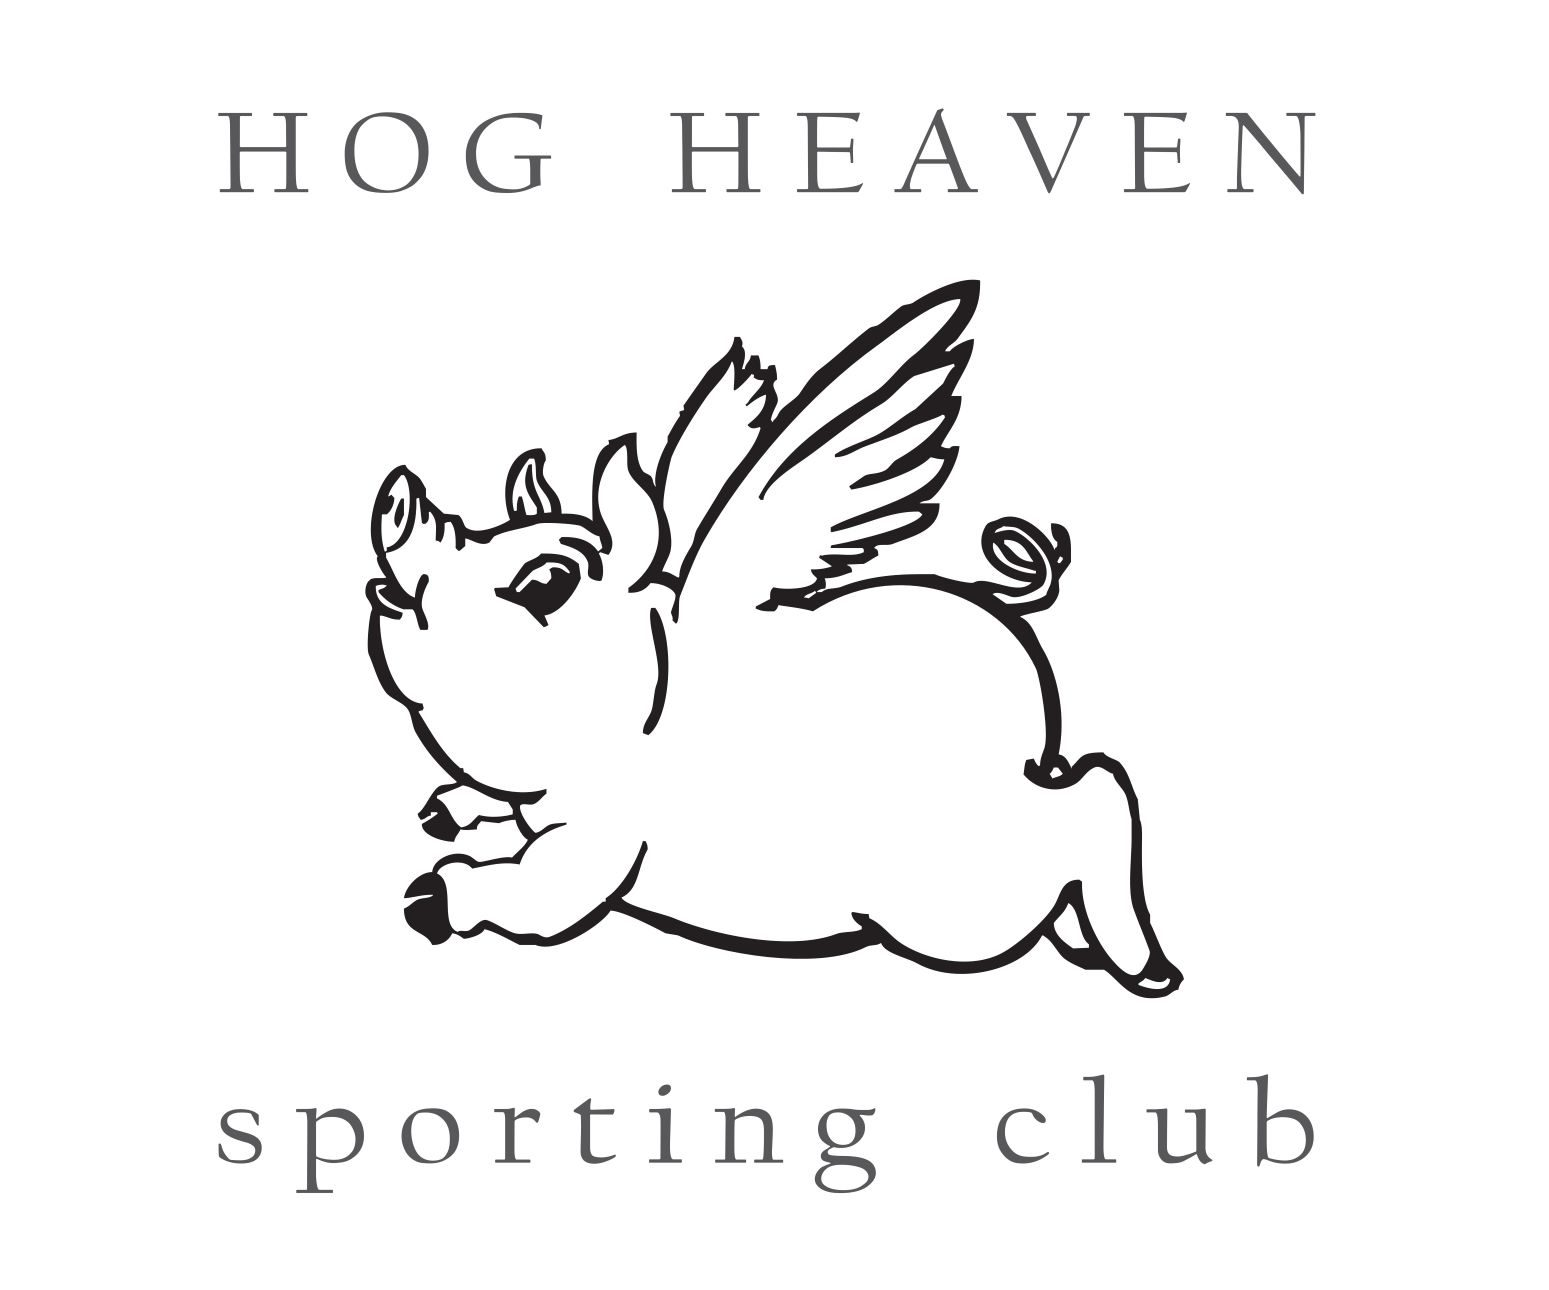 Dripping Springs Chapter - Texas Tech Alumni Scholarship Shoot 2019 @ Hog Heaven Sporting Club | Dripping Springs | Texas | United States